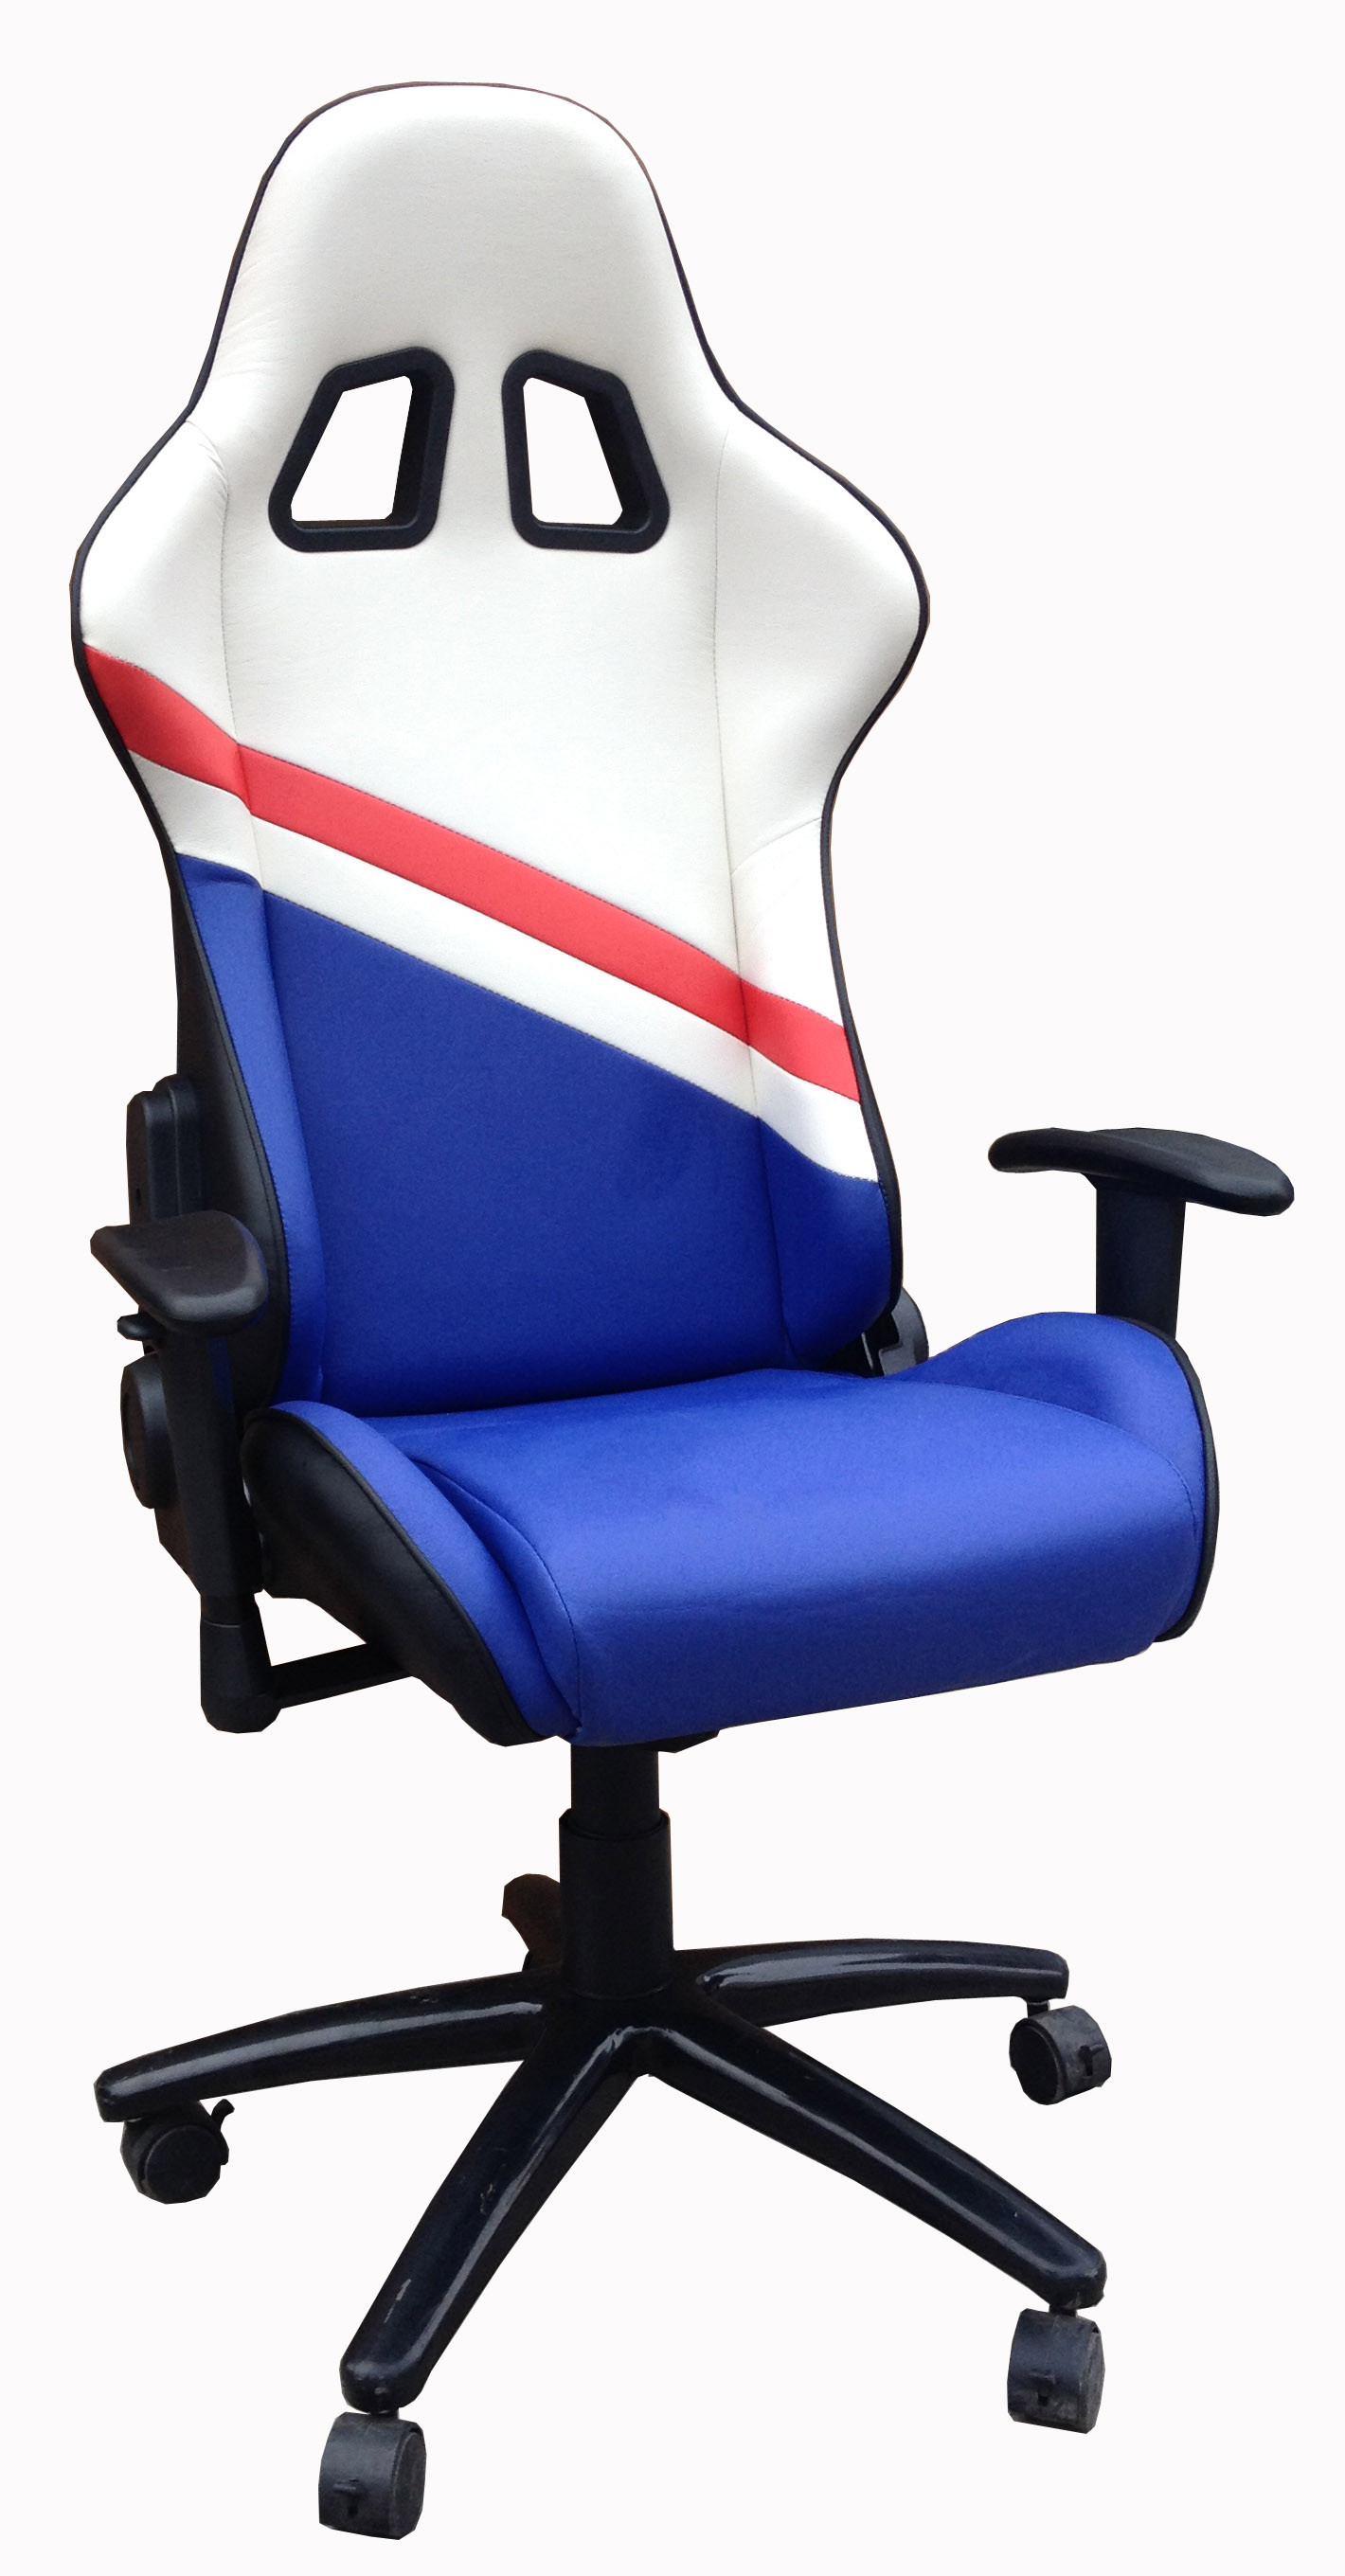 Durable PU Leather Adjustable Office Chair For Work , Study , Rest And Sleep